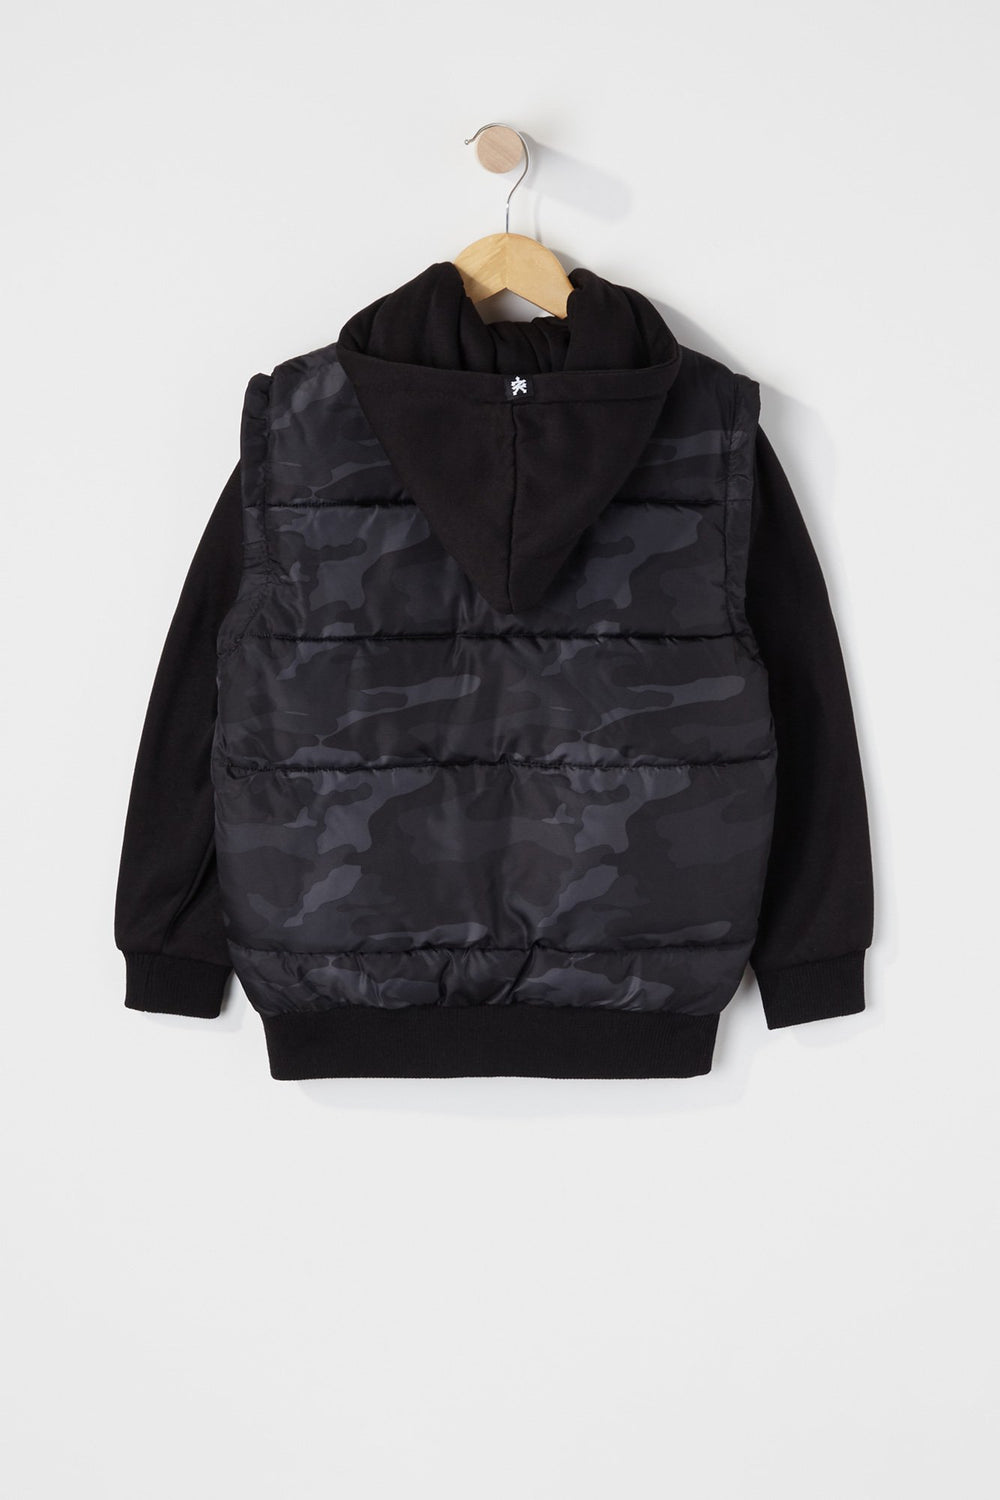 Zoo York Boys Hooded Puffer Vest Black with White